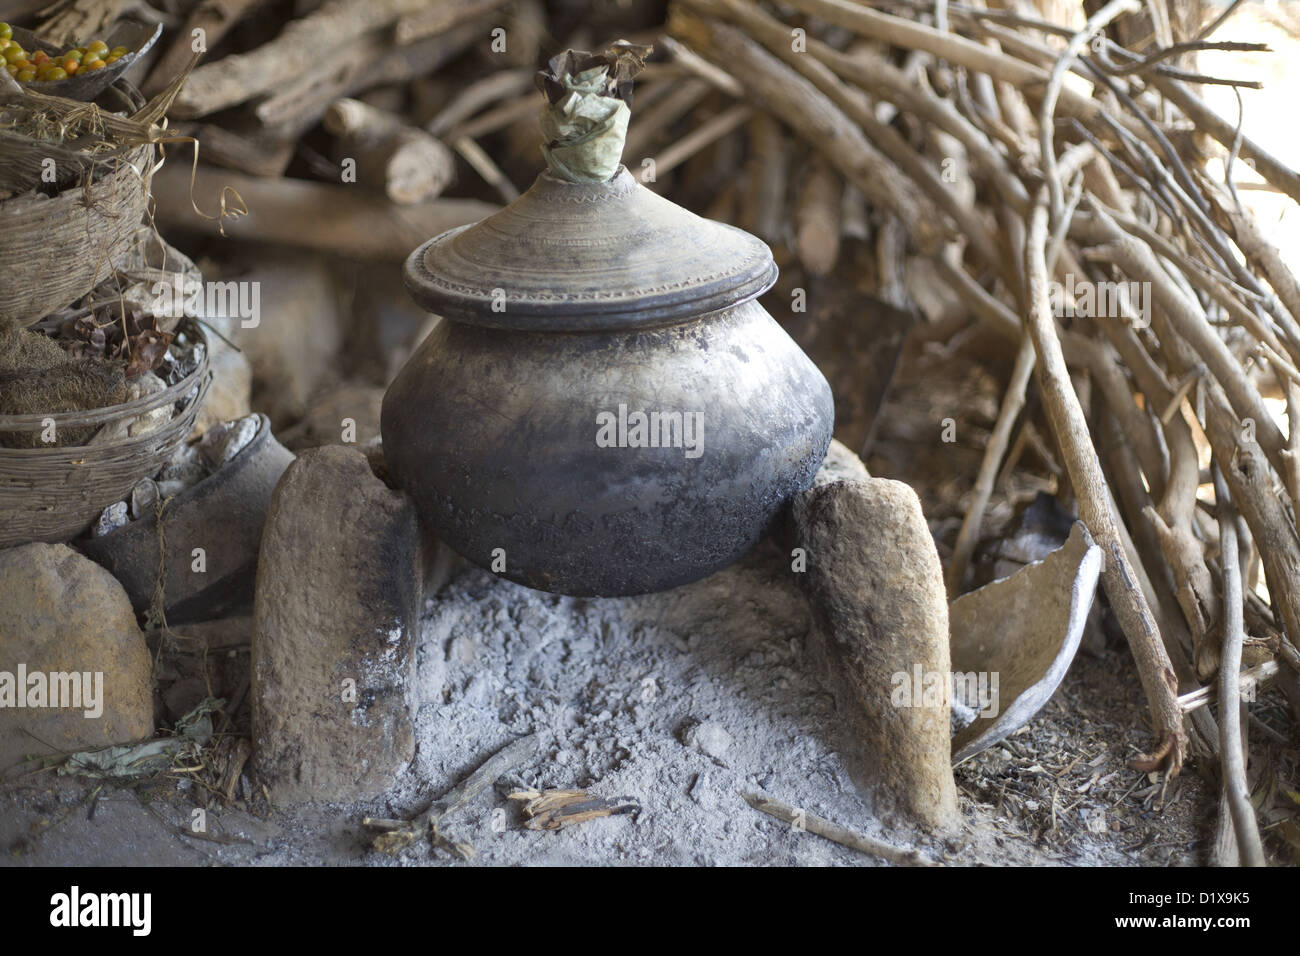 Mud vessel used for water and cooking food, Gond tribe, Gadchiroli, Maharashtra, India. Stock Photo